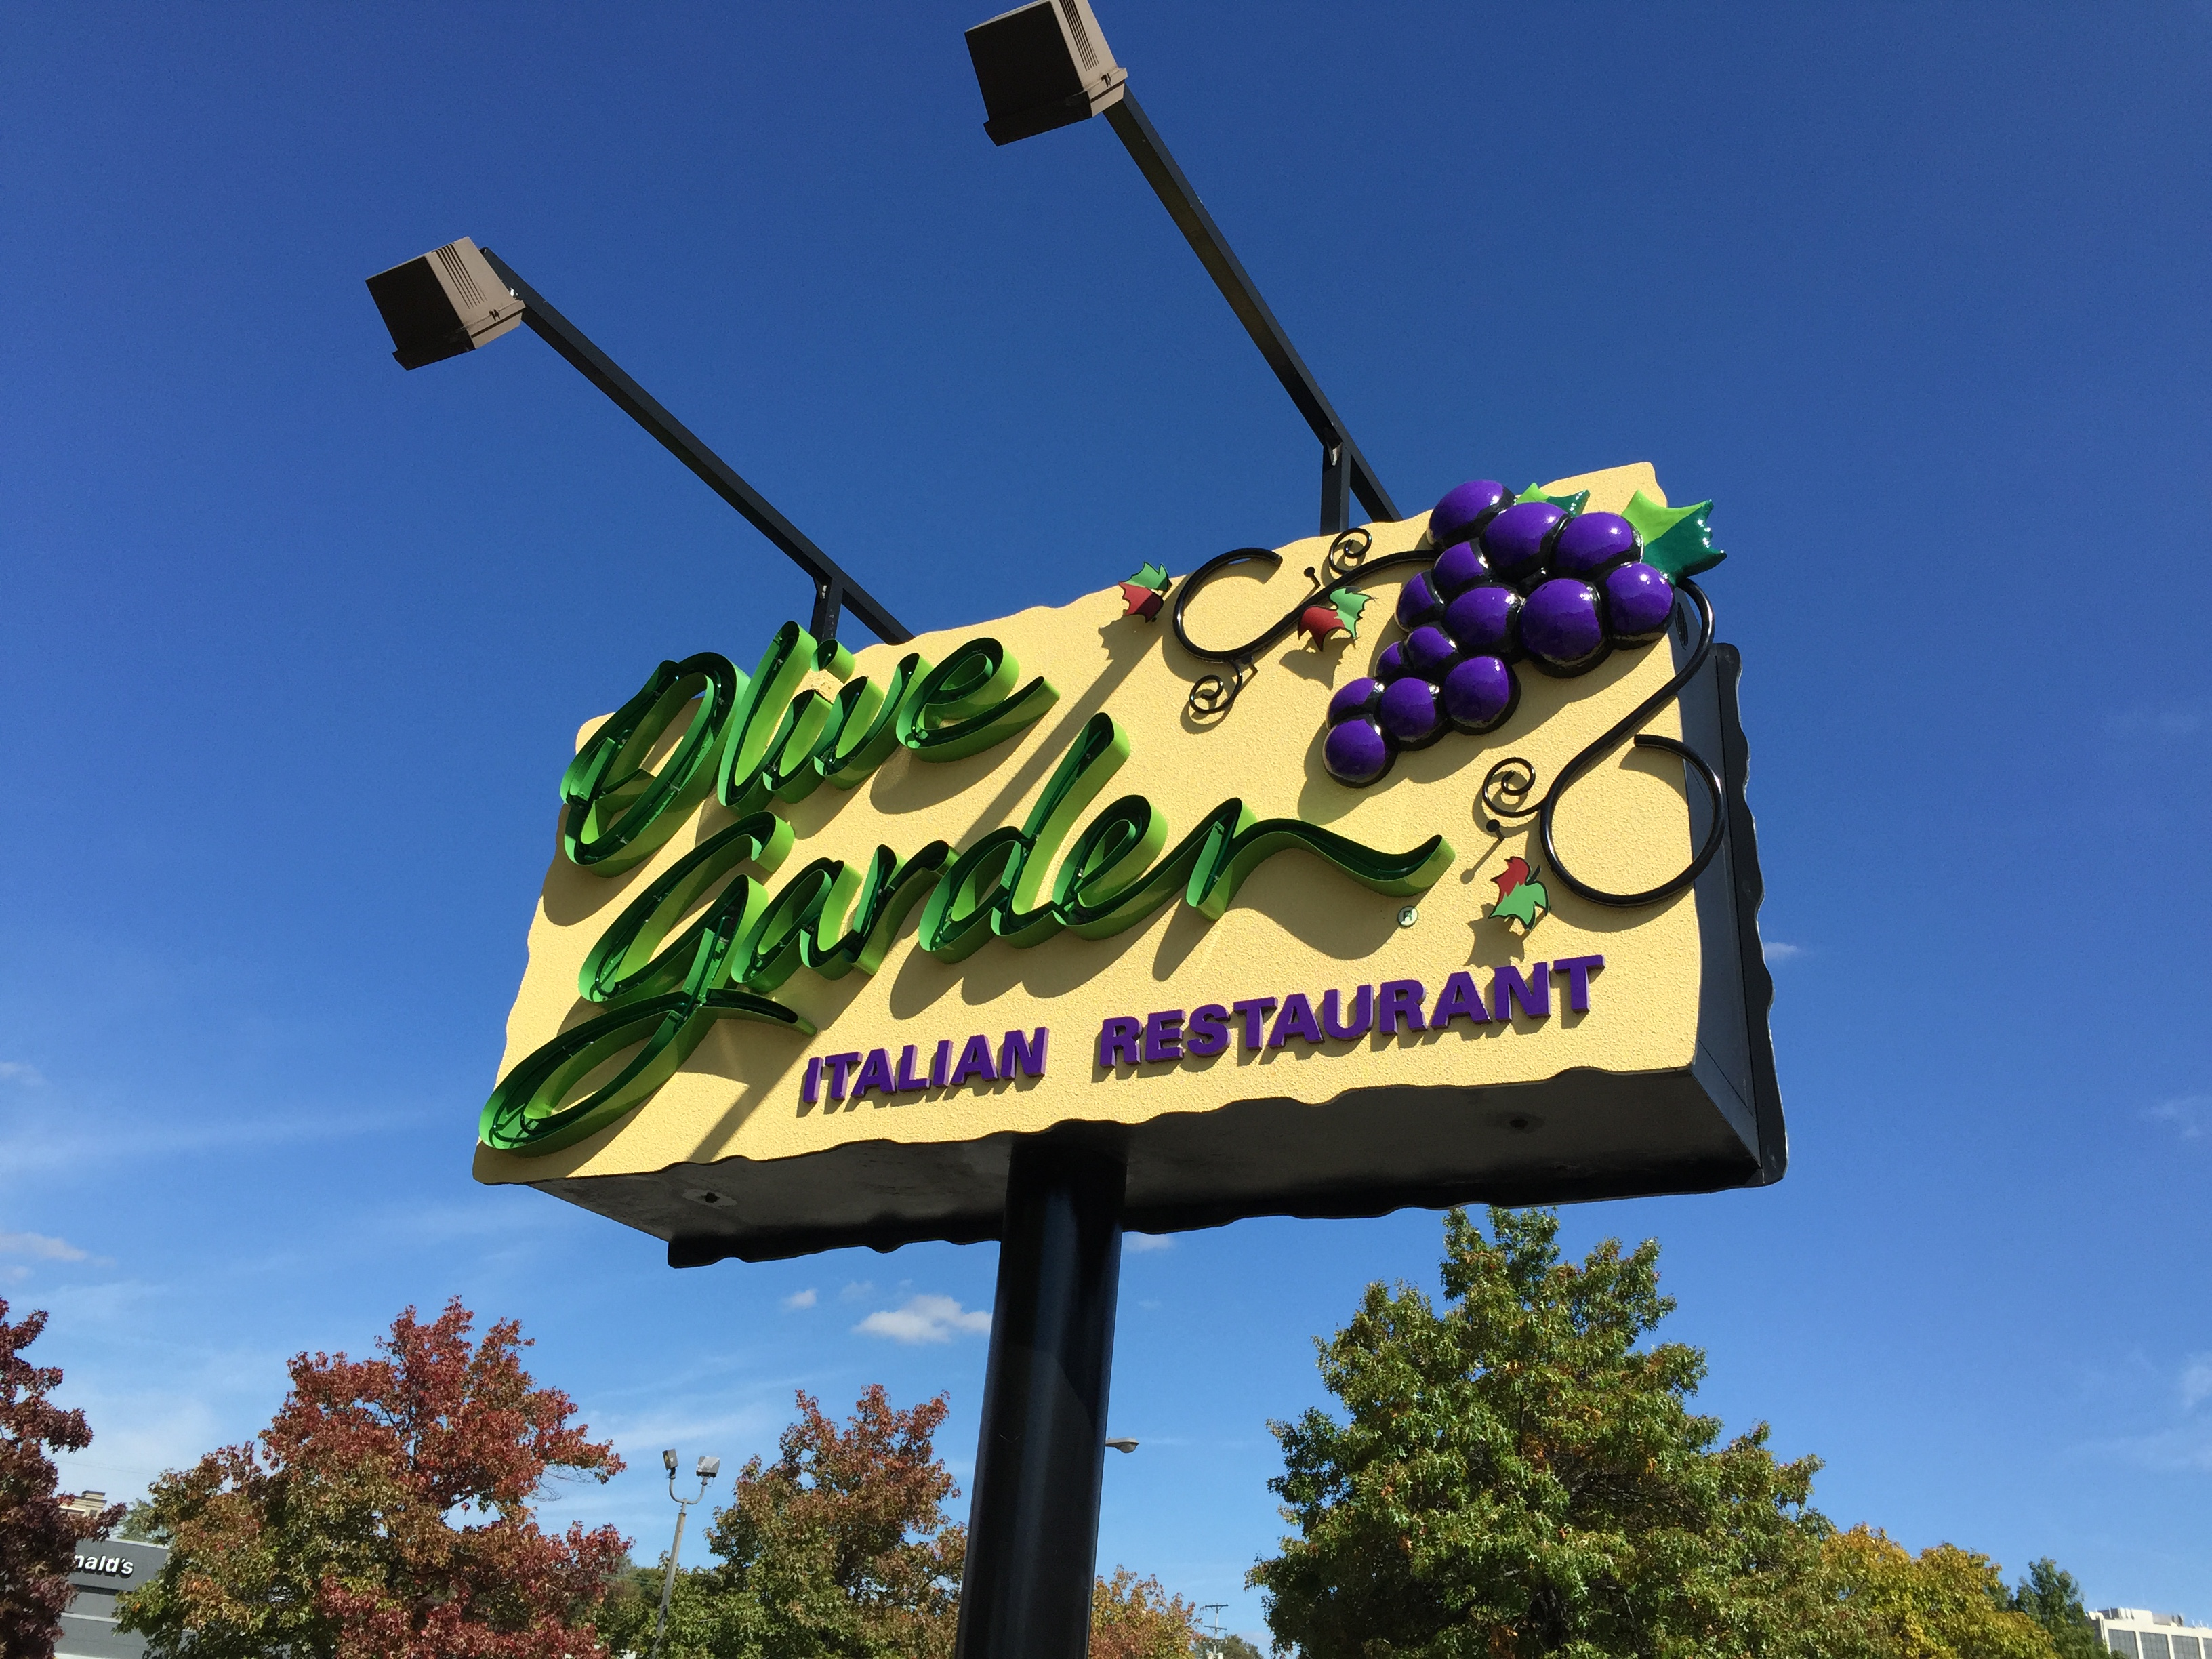 Olive Garden Monroeville Pacooks And Eats